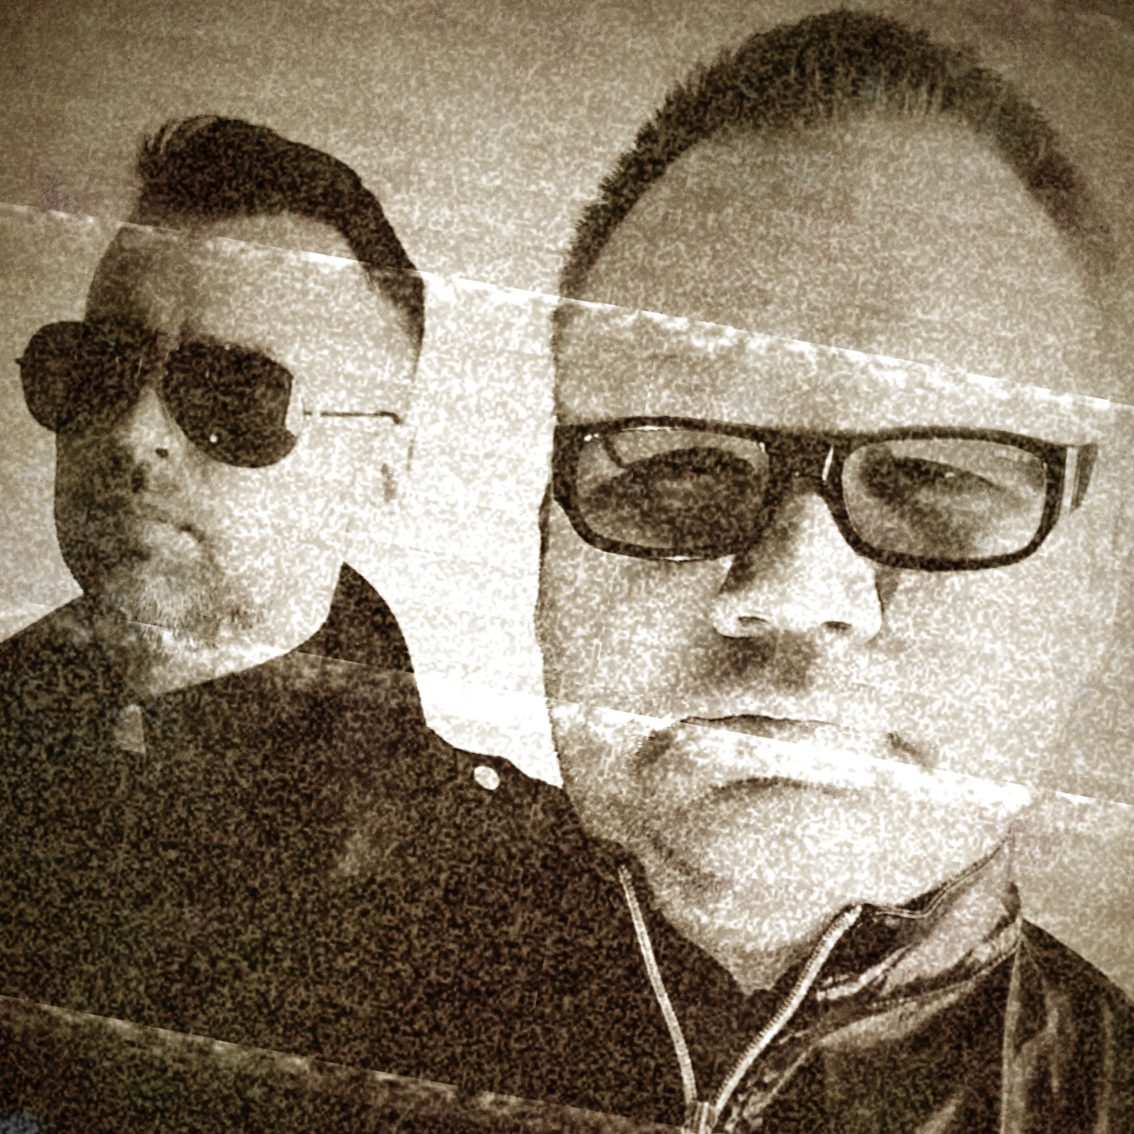 EBM duo Invisible Devastation has brand new single out: 'Chernoyarsk' - check it out !